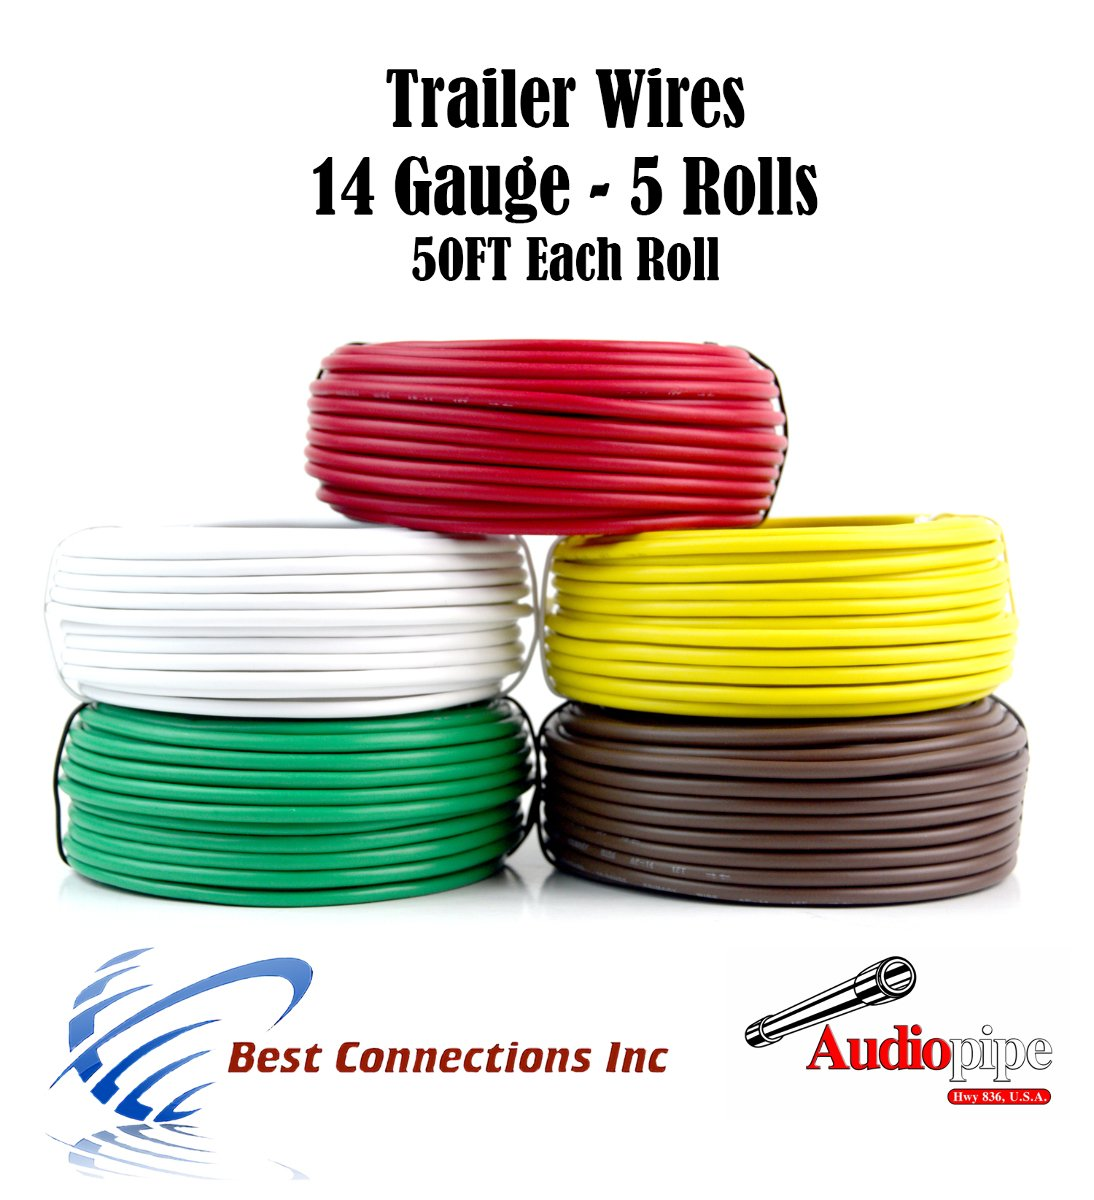 Trailer Light Cable Wiring Harness 100ft spools 14 Gauge 7 Wire 7 colors